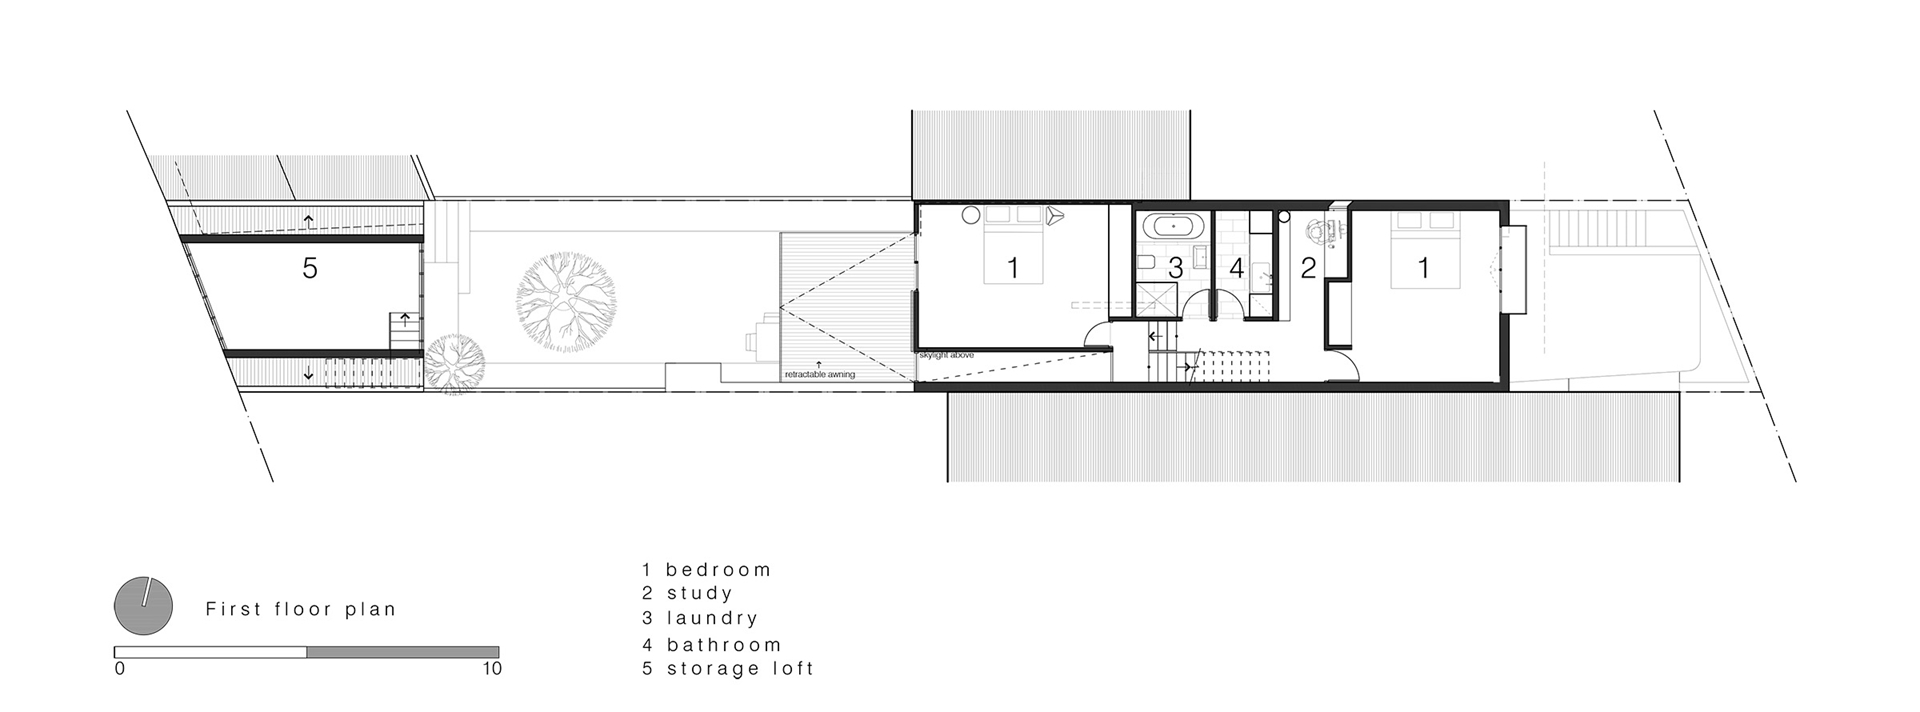 luigi rosselli architects   directors cut on architecture 2_First Floor Plan_96_DPI (Copy)